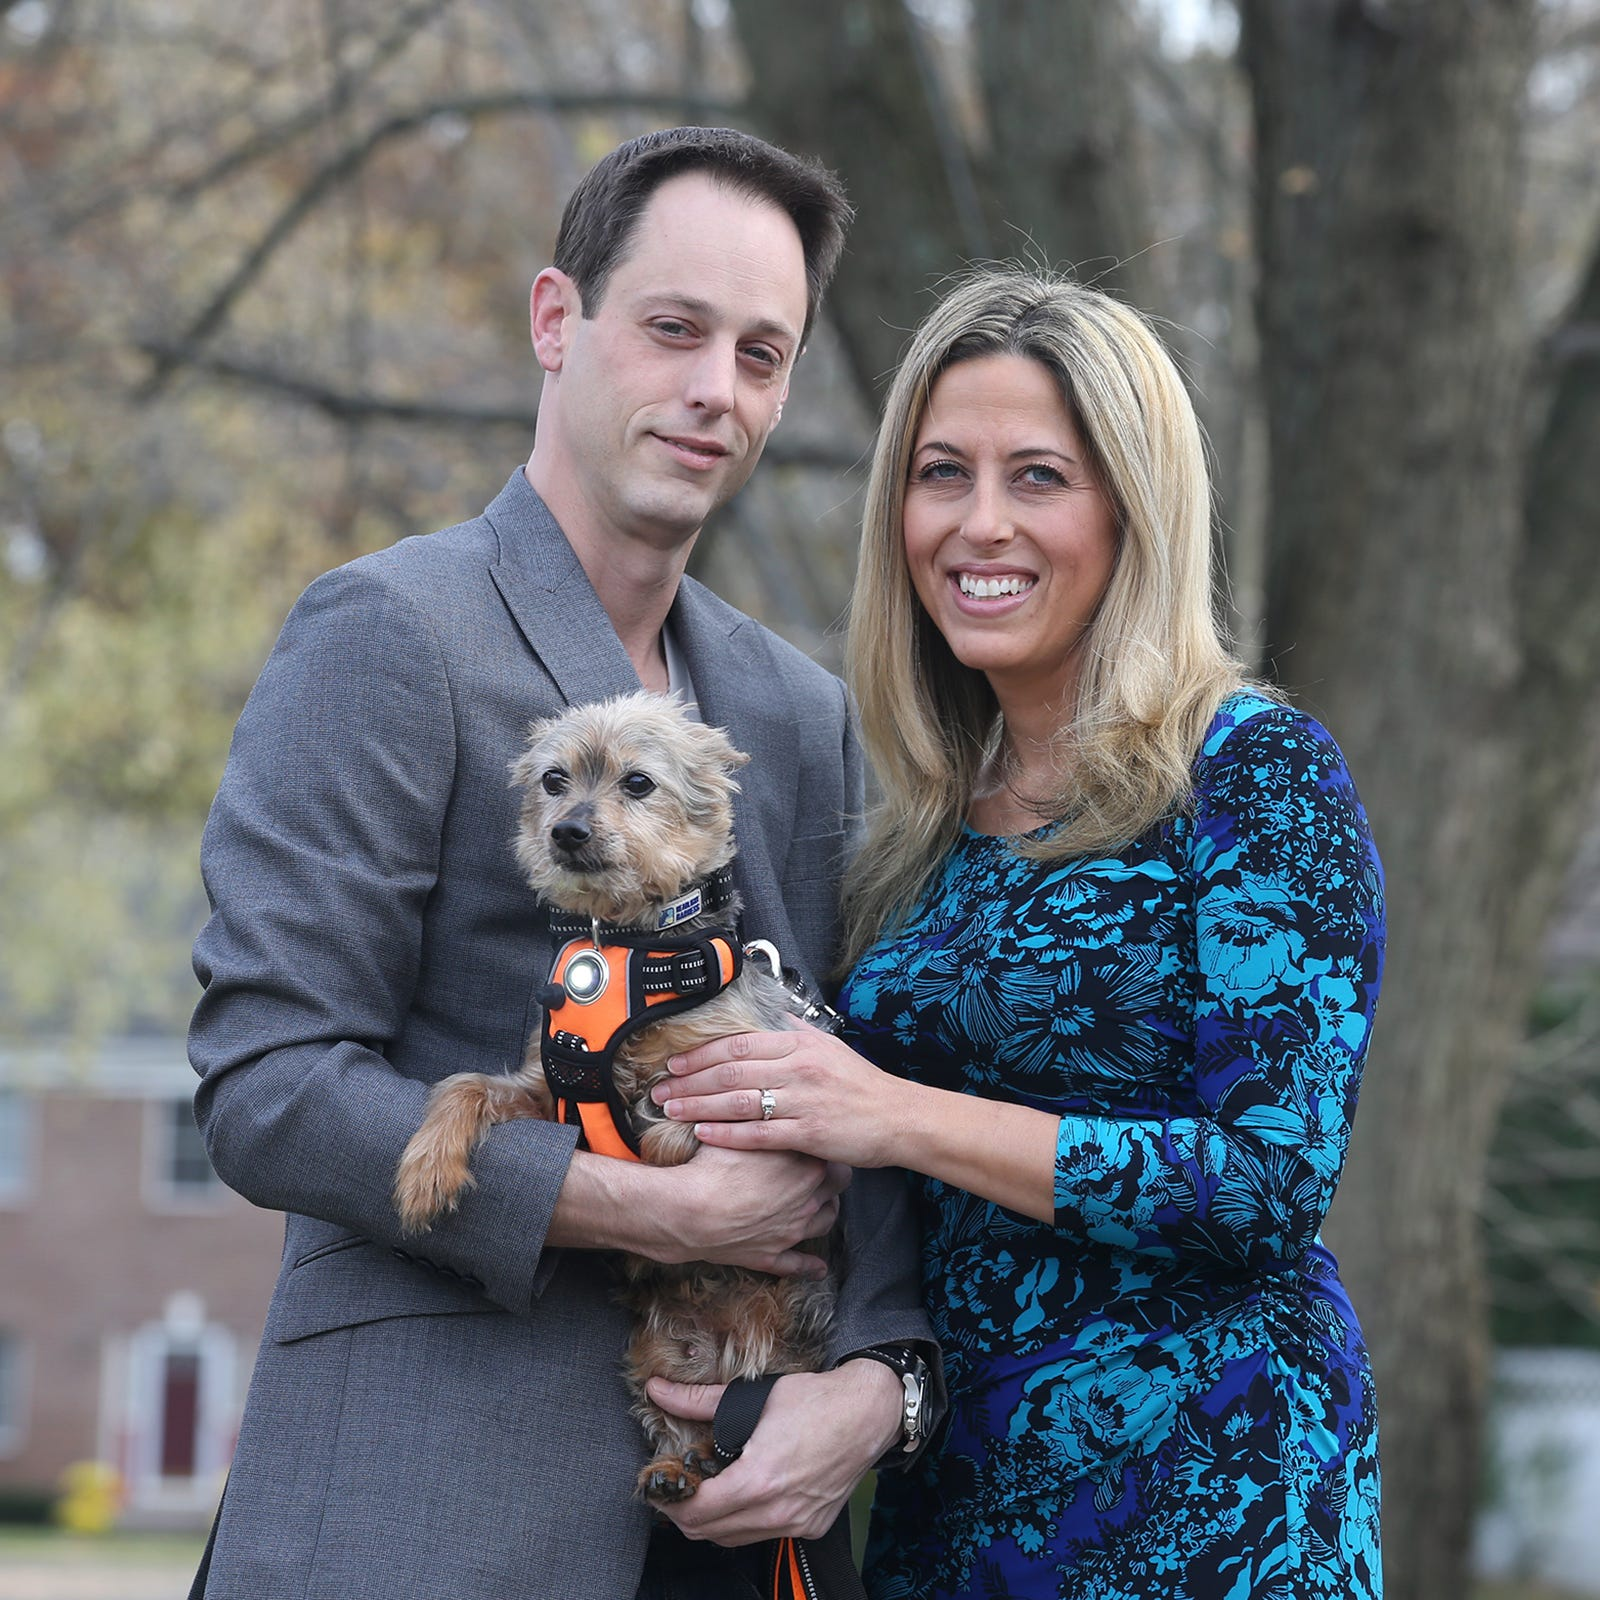 Matawan couple's idea could save your dog's life